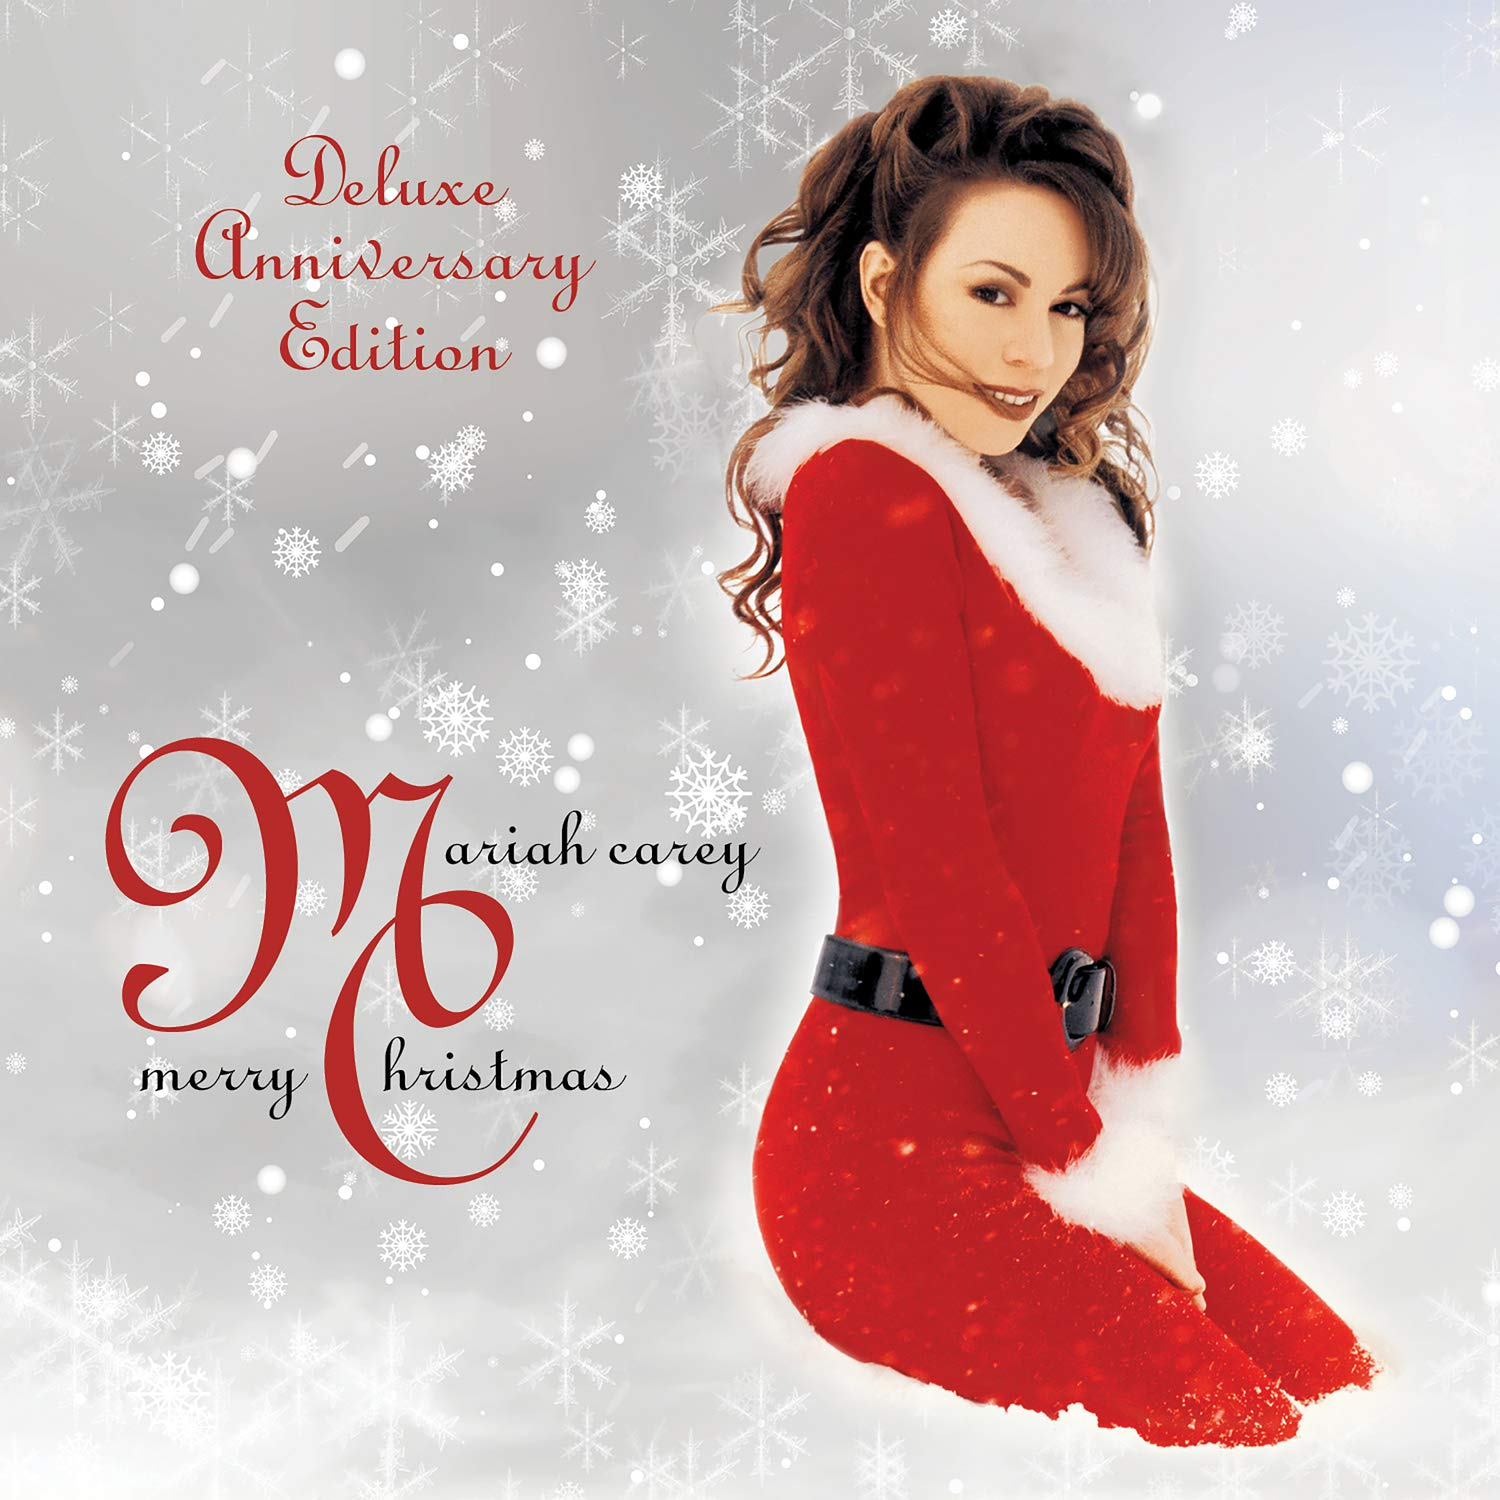 Mariah Carey Merry Christmas.Mariah Carey Merry Christmas Deluxe Anniversary Edition